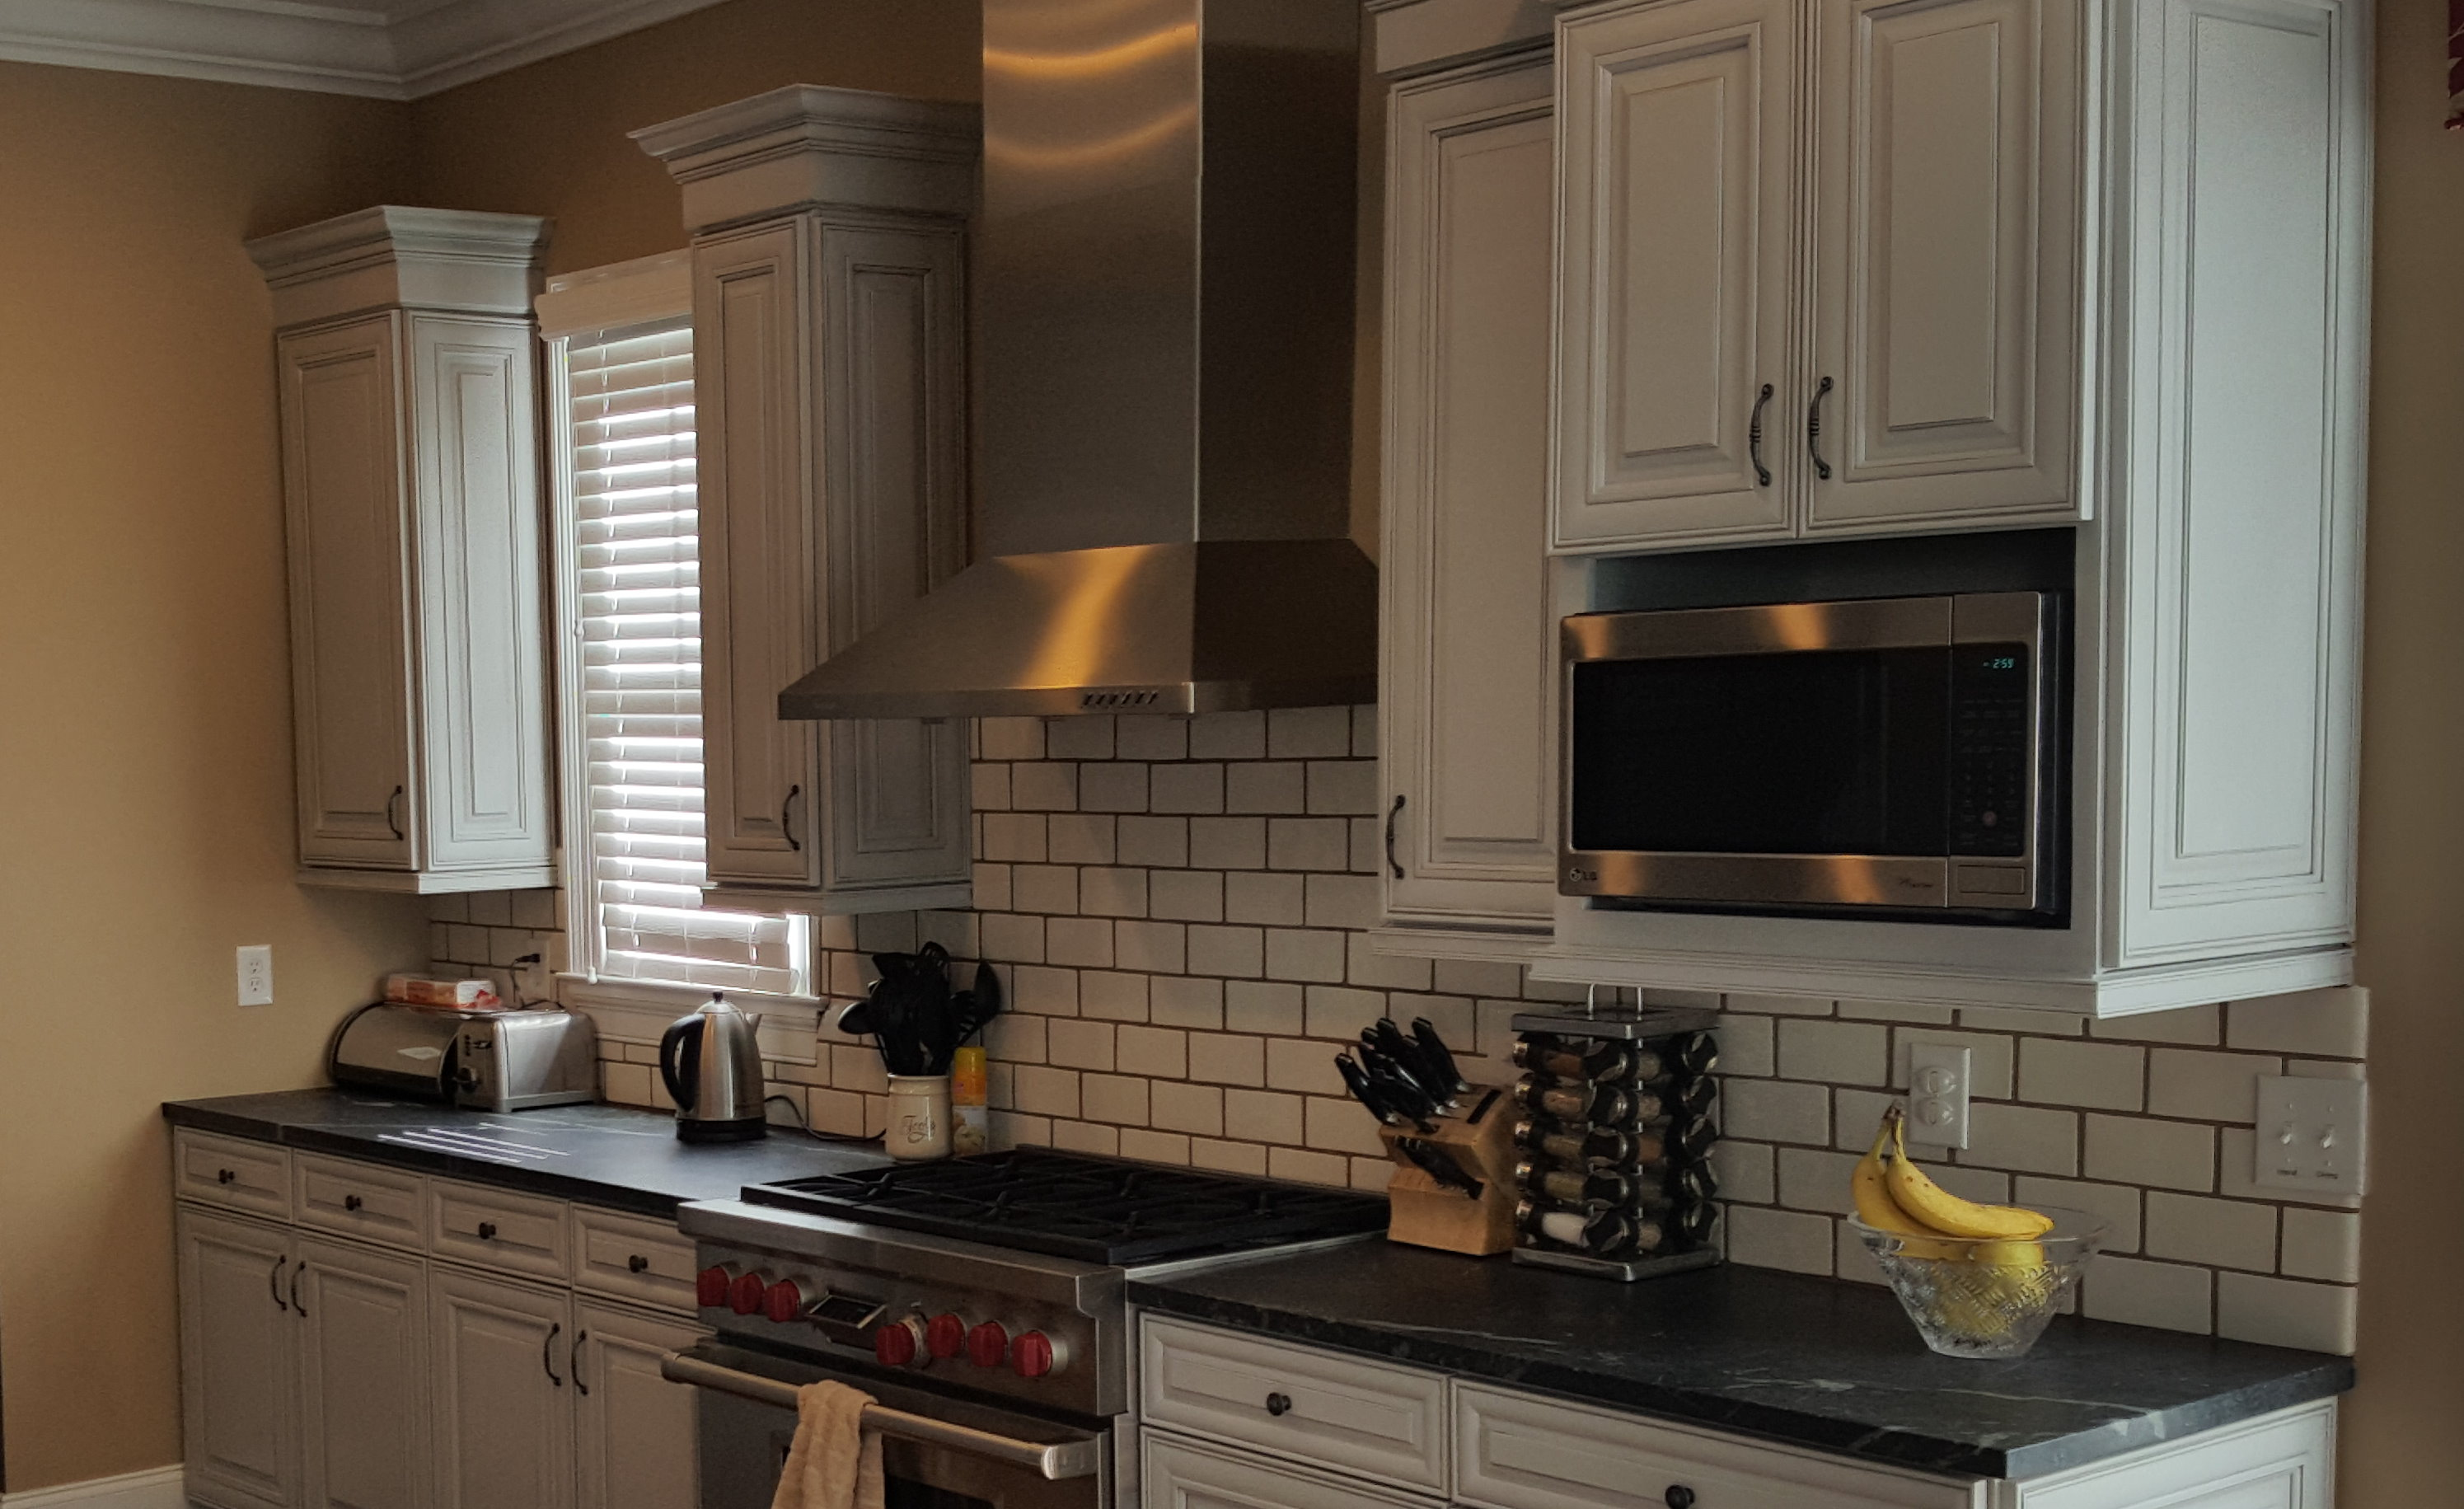 Refinish kitchen cabinets charlotte nc - Deitz Surface Detailing Kitchen And Bath Restoration Remodeling Alternative Google